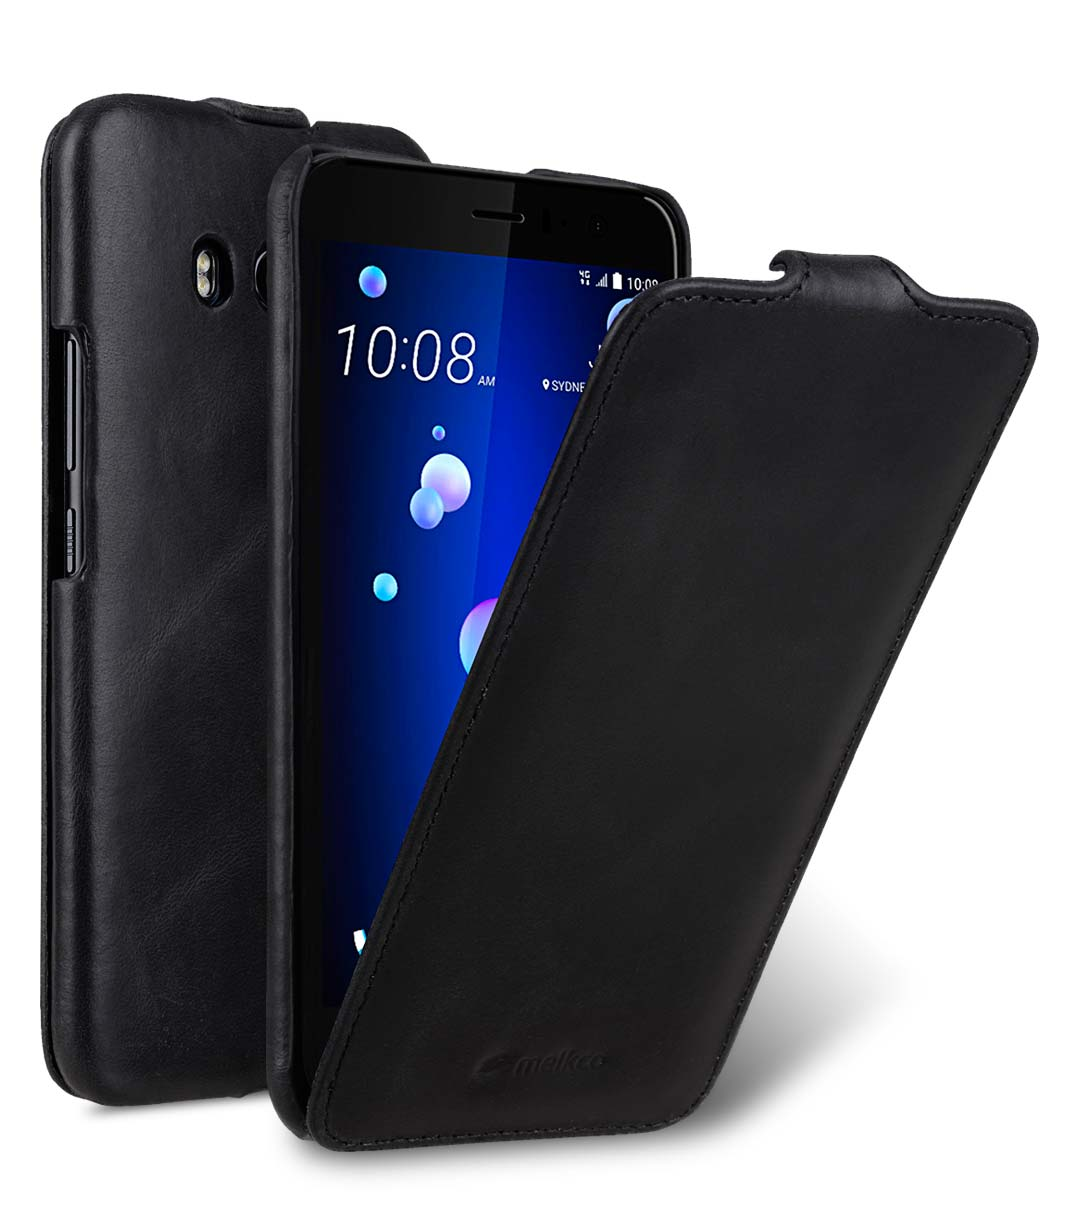 Premium Leather Case for HTC U11 - Jacka Type